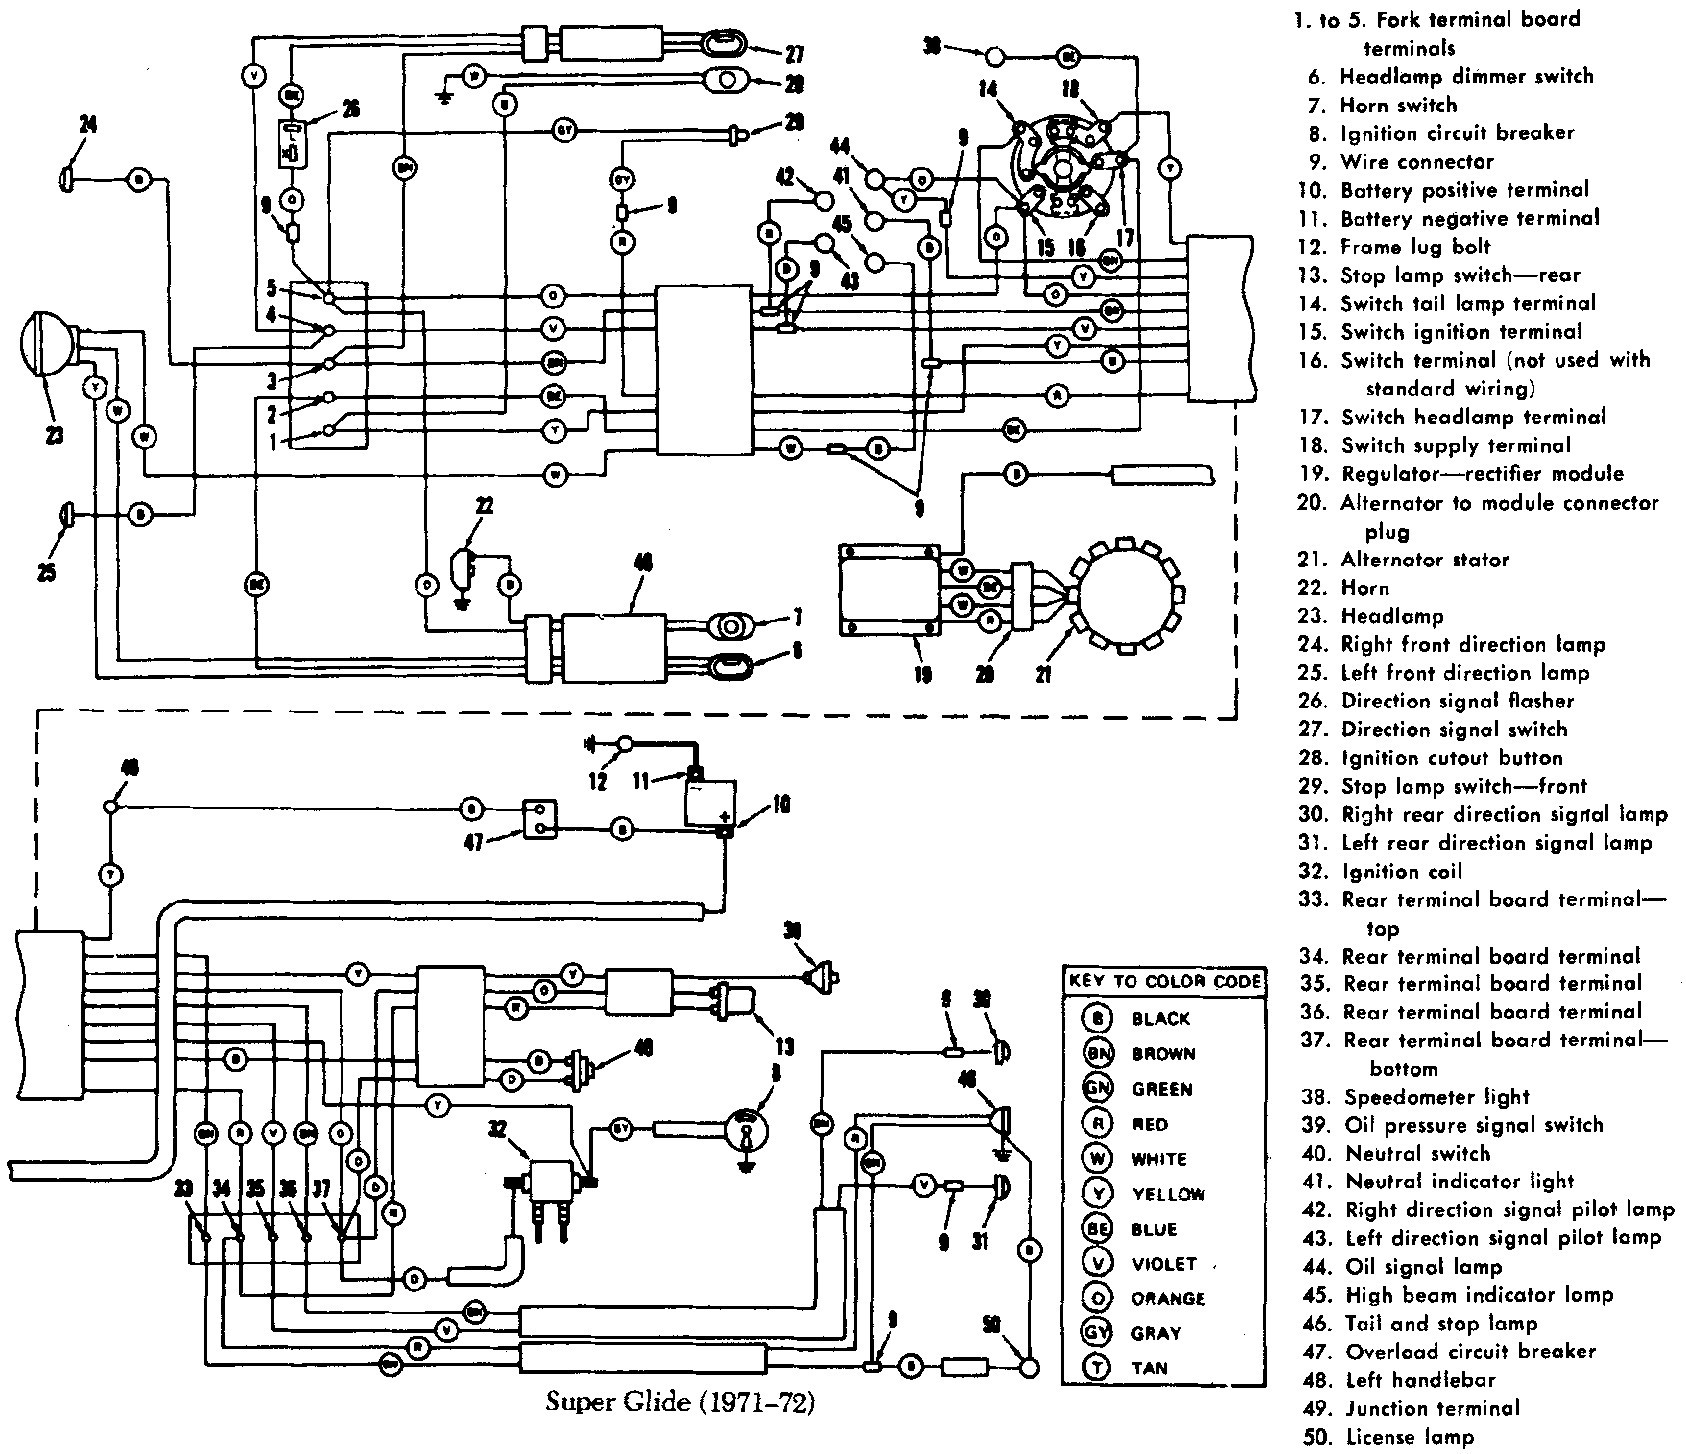 1998 Harley Sportster Wiring Diagram Library 96 1200 House Davidson Golf Cart